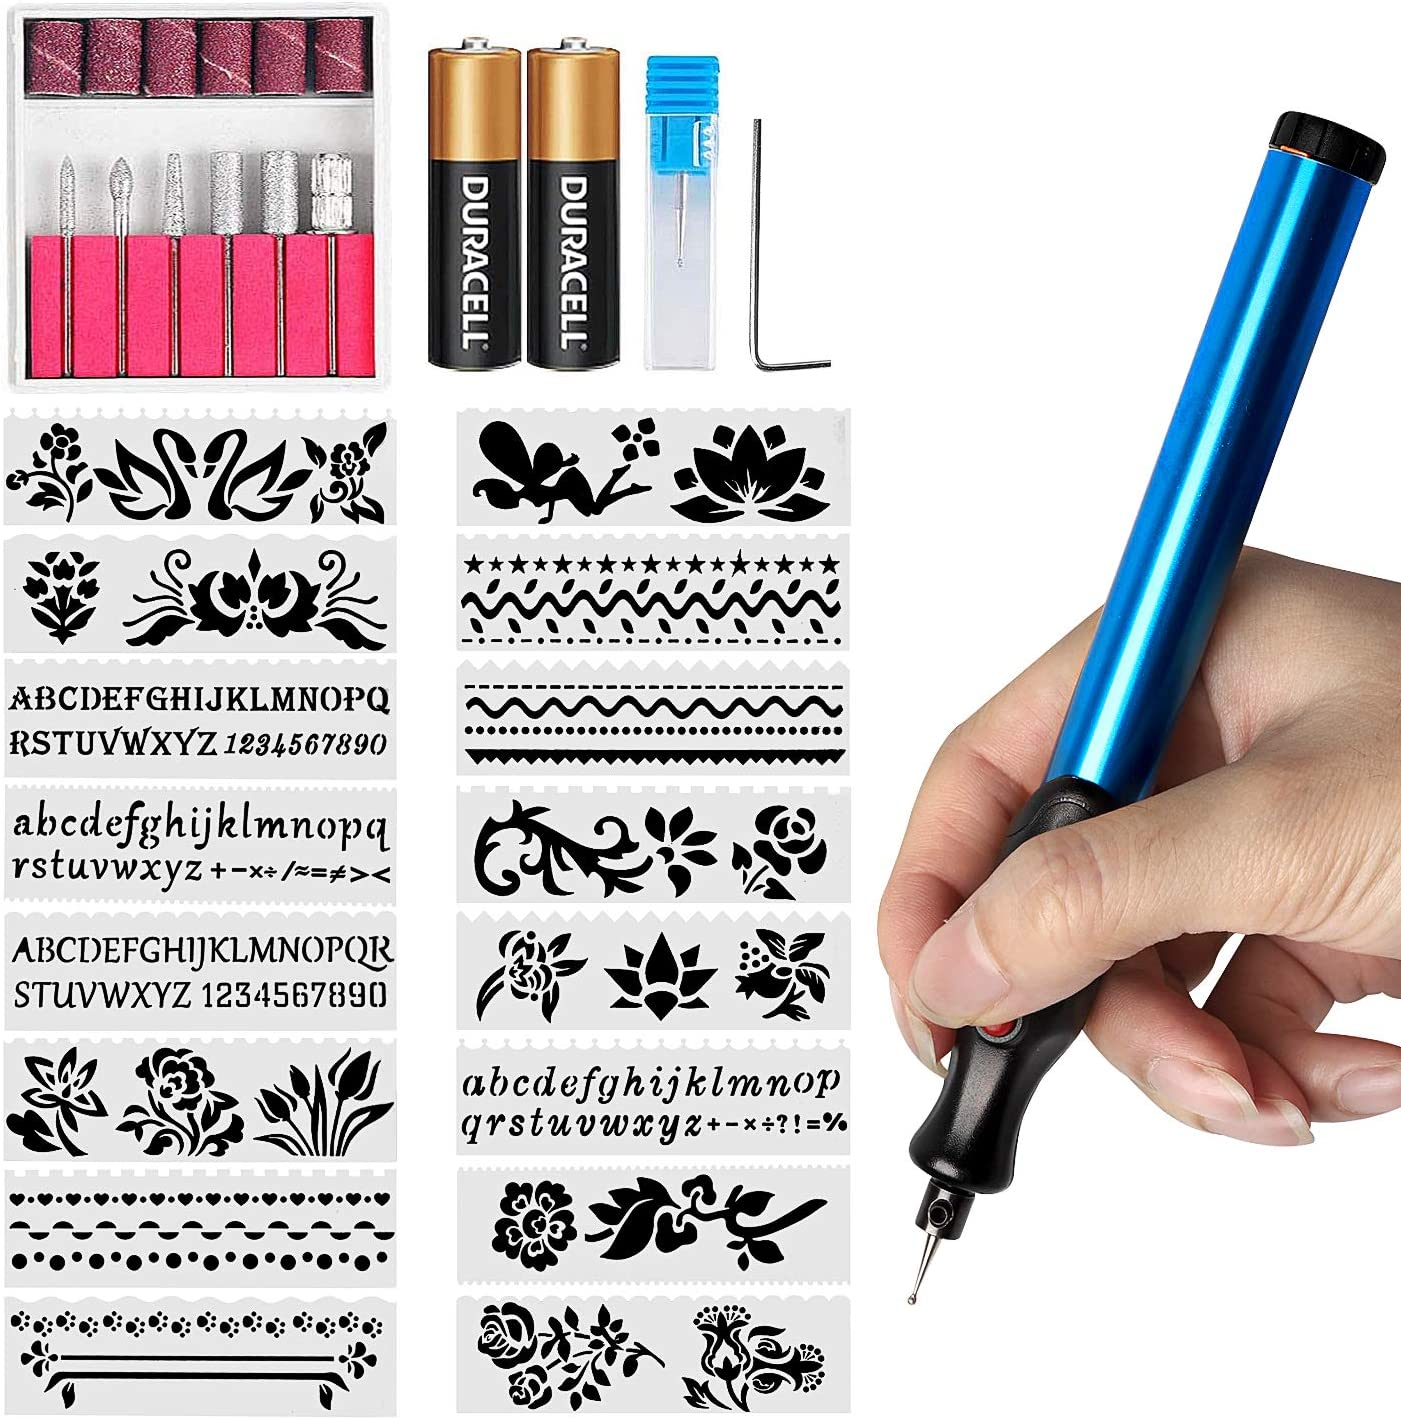 Blue Engraving Pen 15pcs DIY Electric Engraving Engraver Pen Carve Tool Fit for Jewelry Metal Glass for Kids Toy Sporting Gear Gift Tool